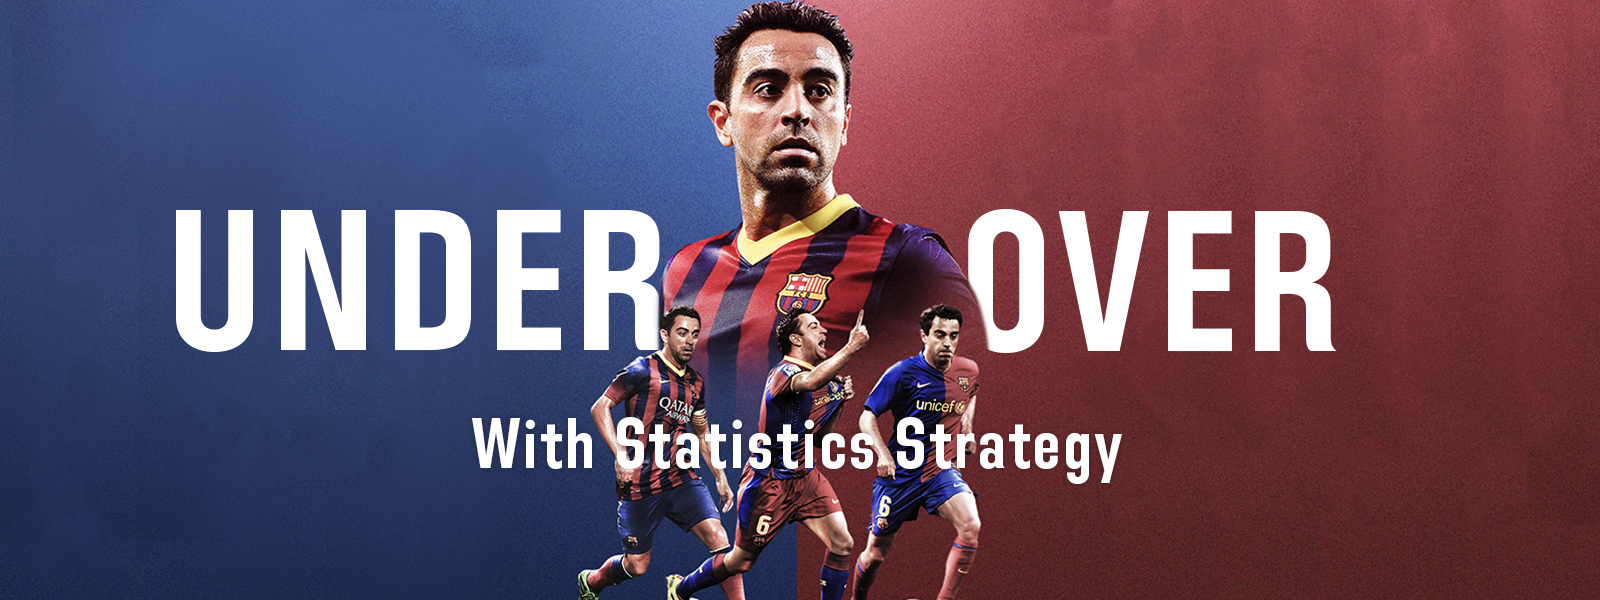 Betting On Over/under With Statistics Strategy